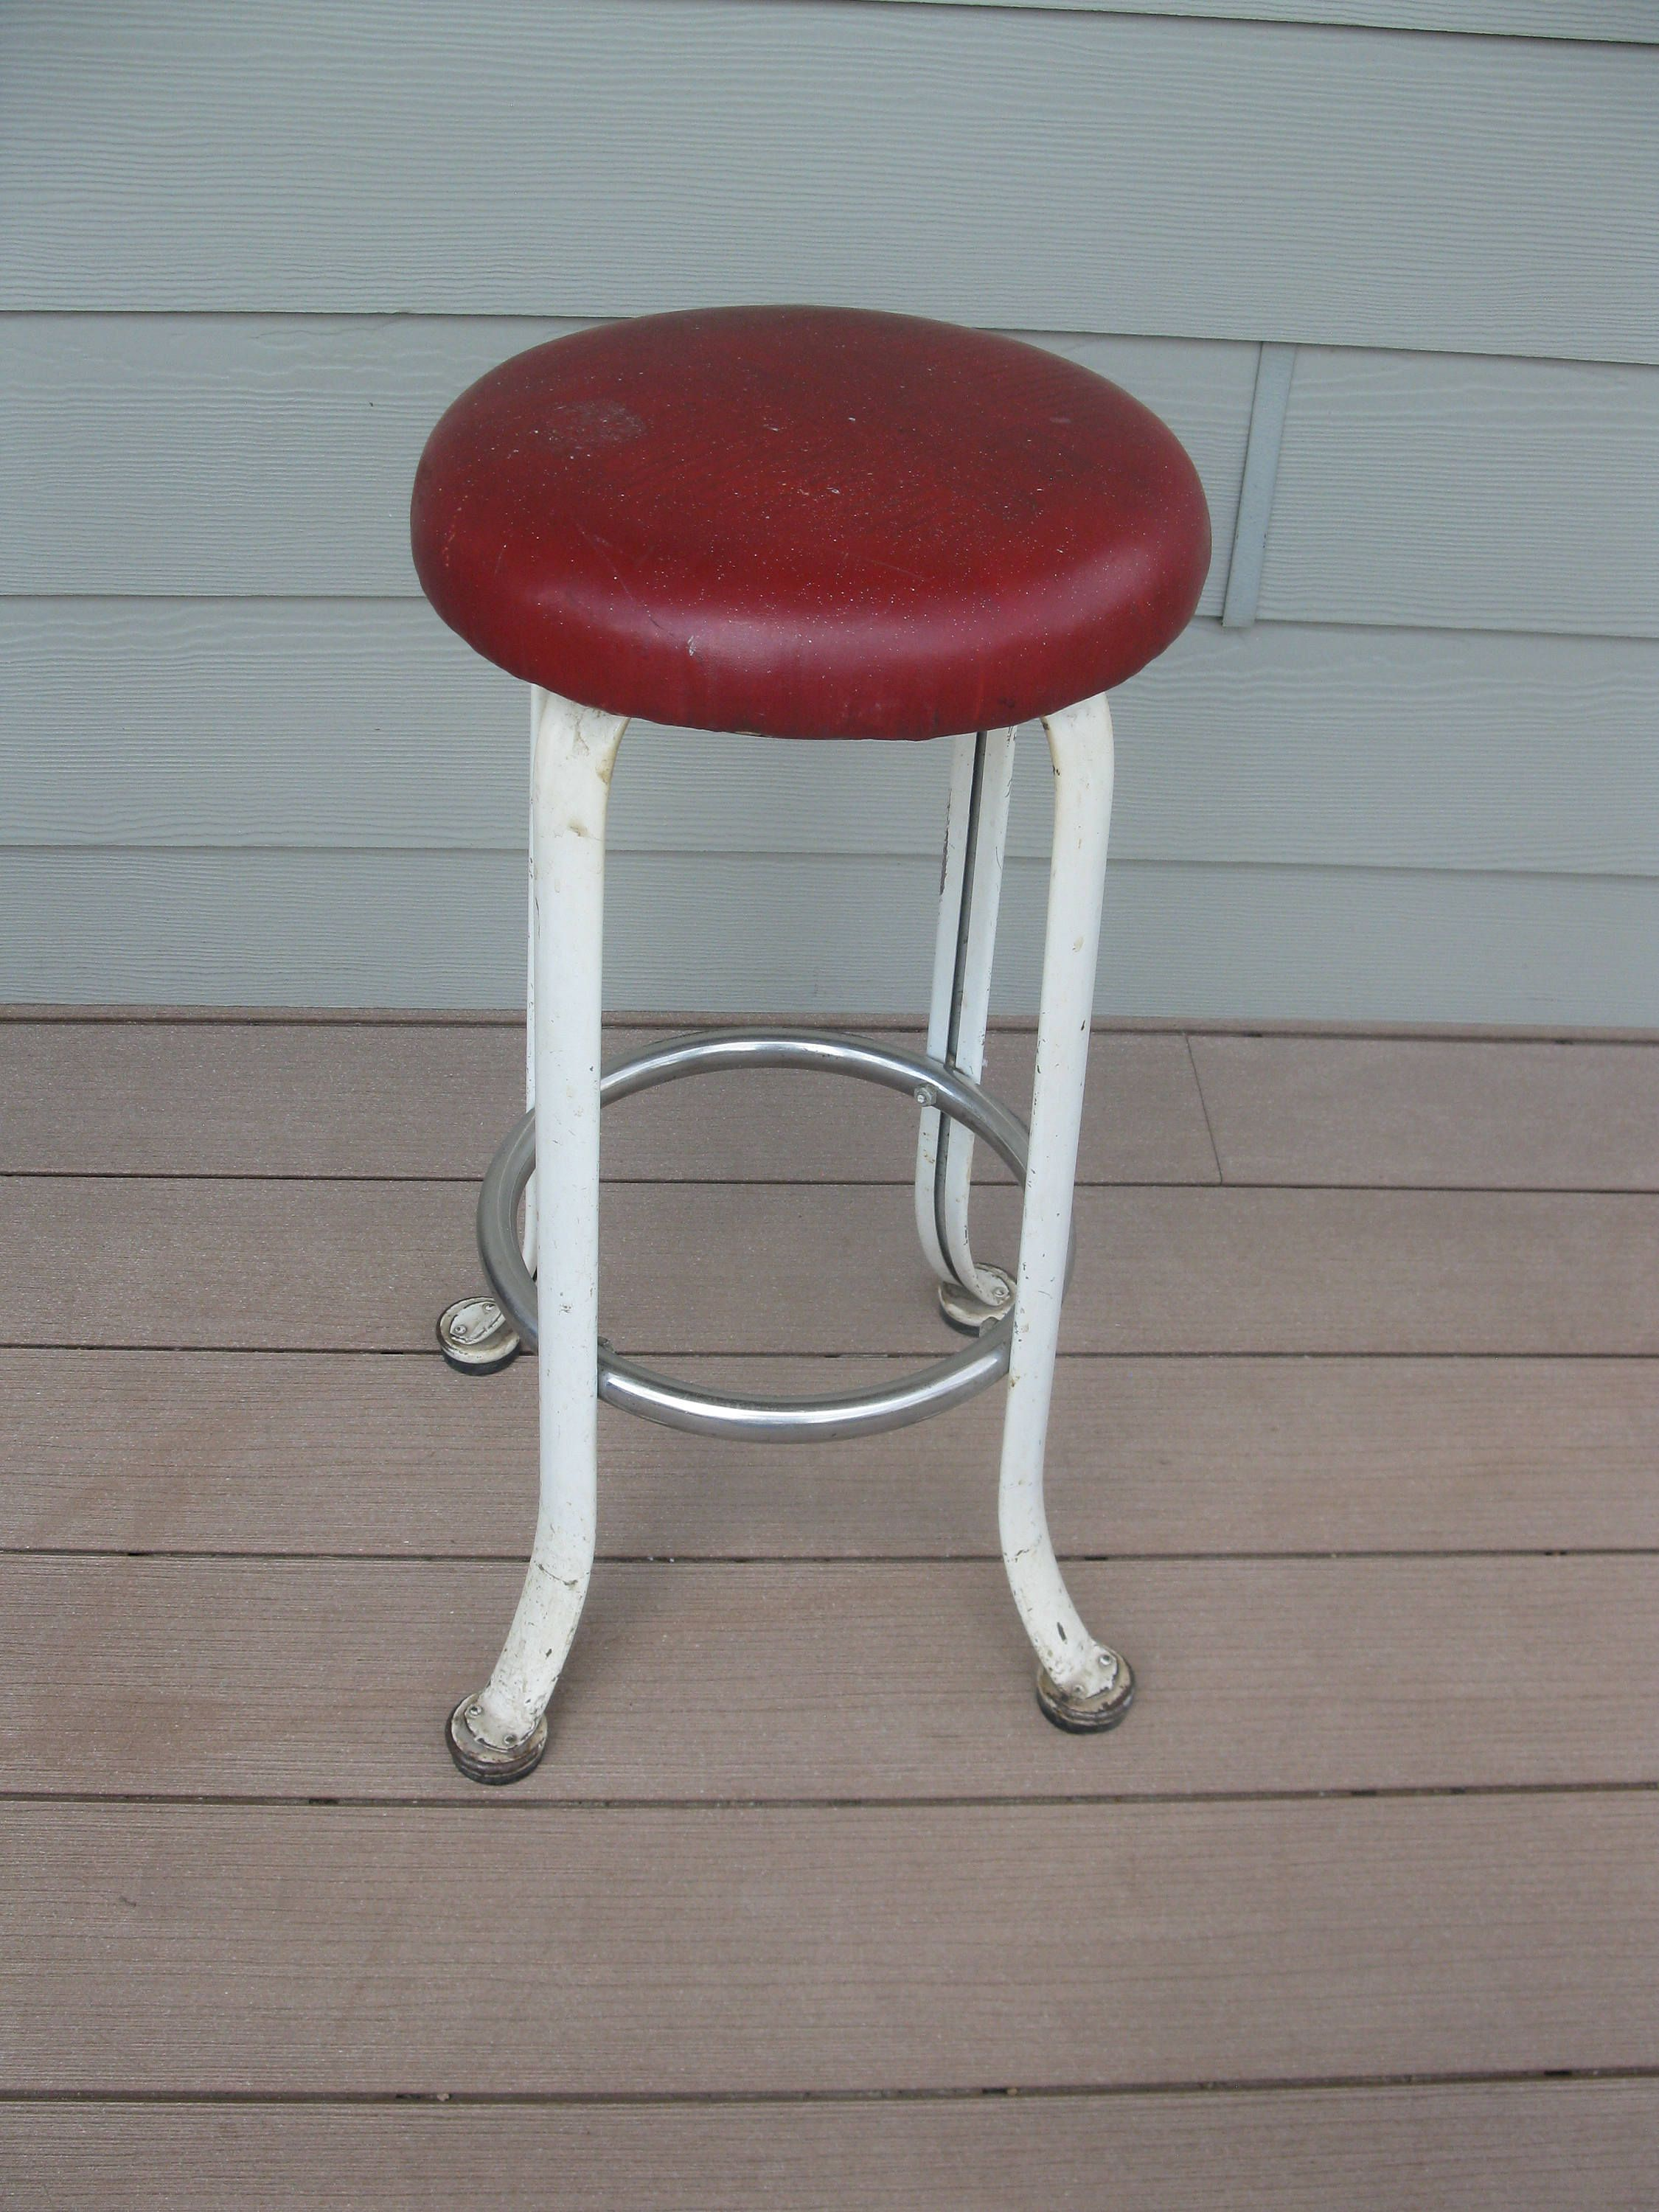 Fabulous Rare Rite Hite Kitchen Stool Red Padded Seat Childs Stool Creativecarmelina Interior Chair Design Creativecarmelinacom